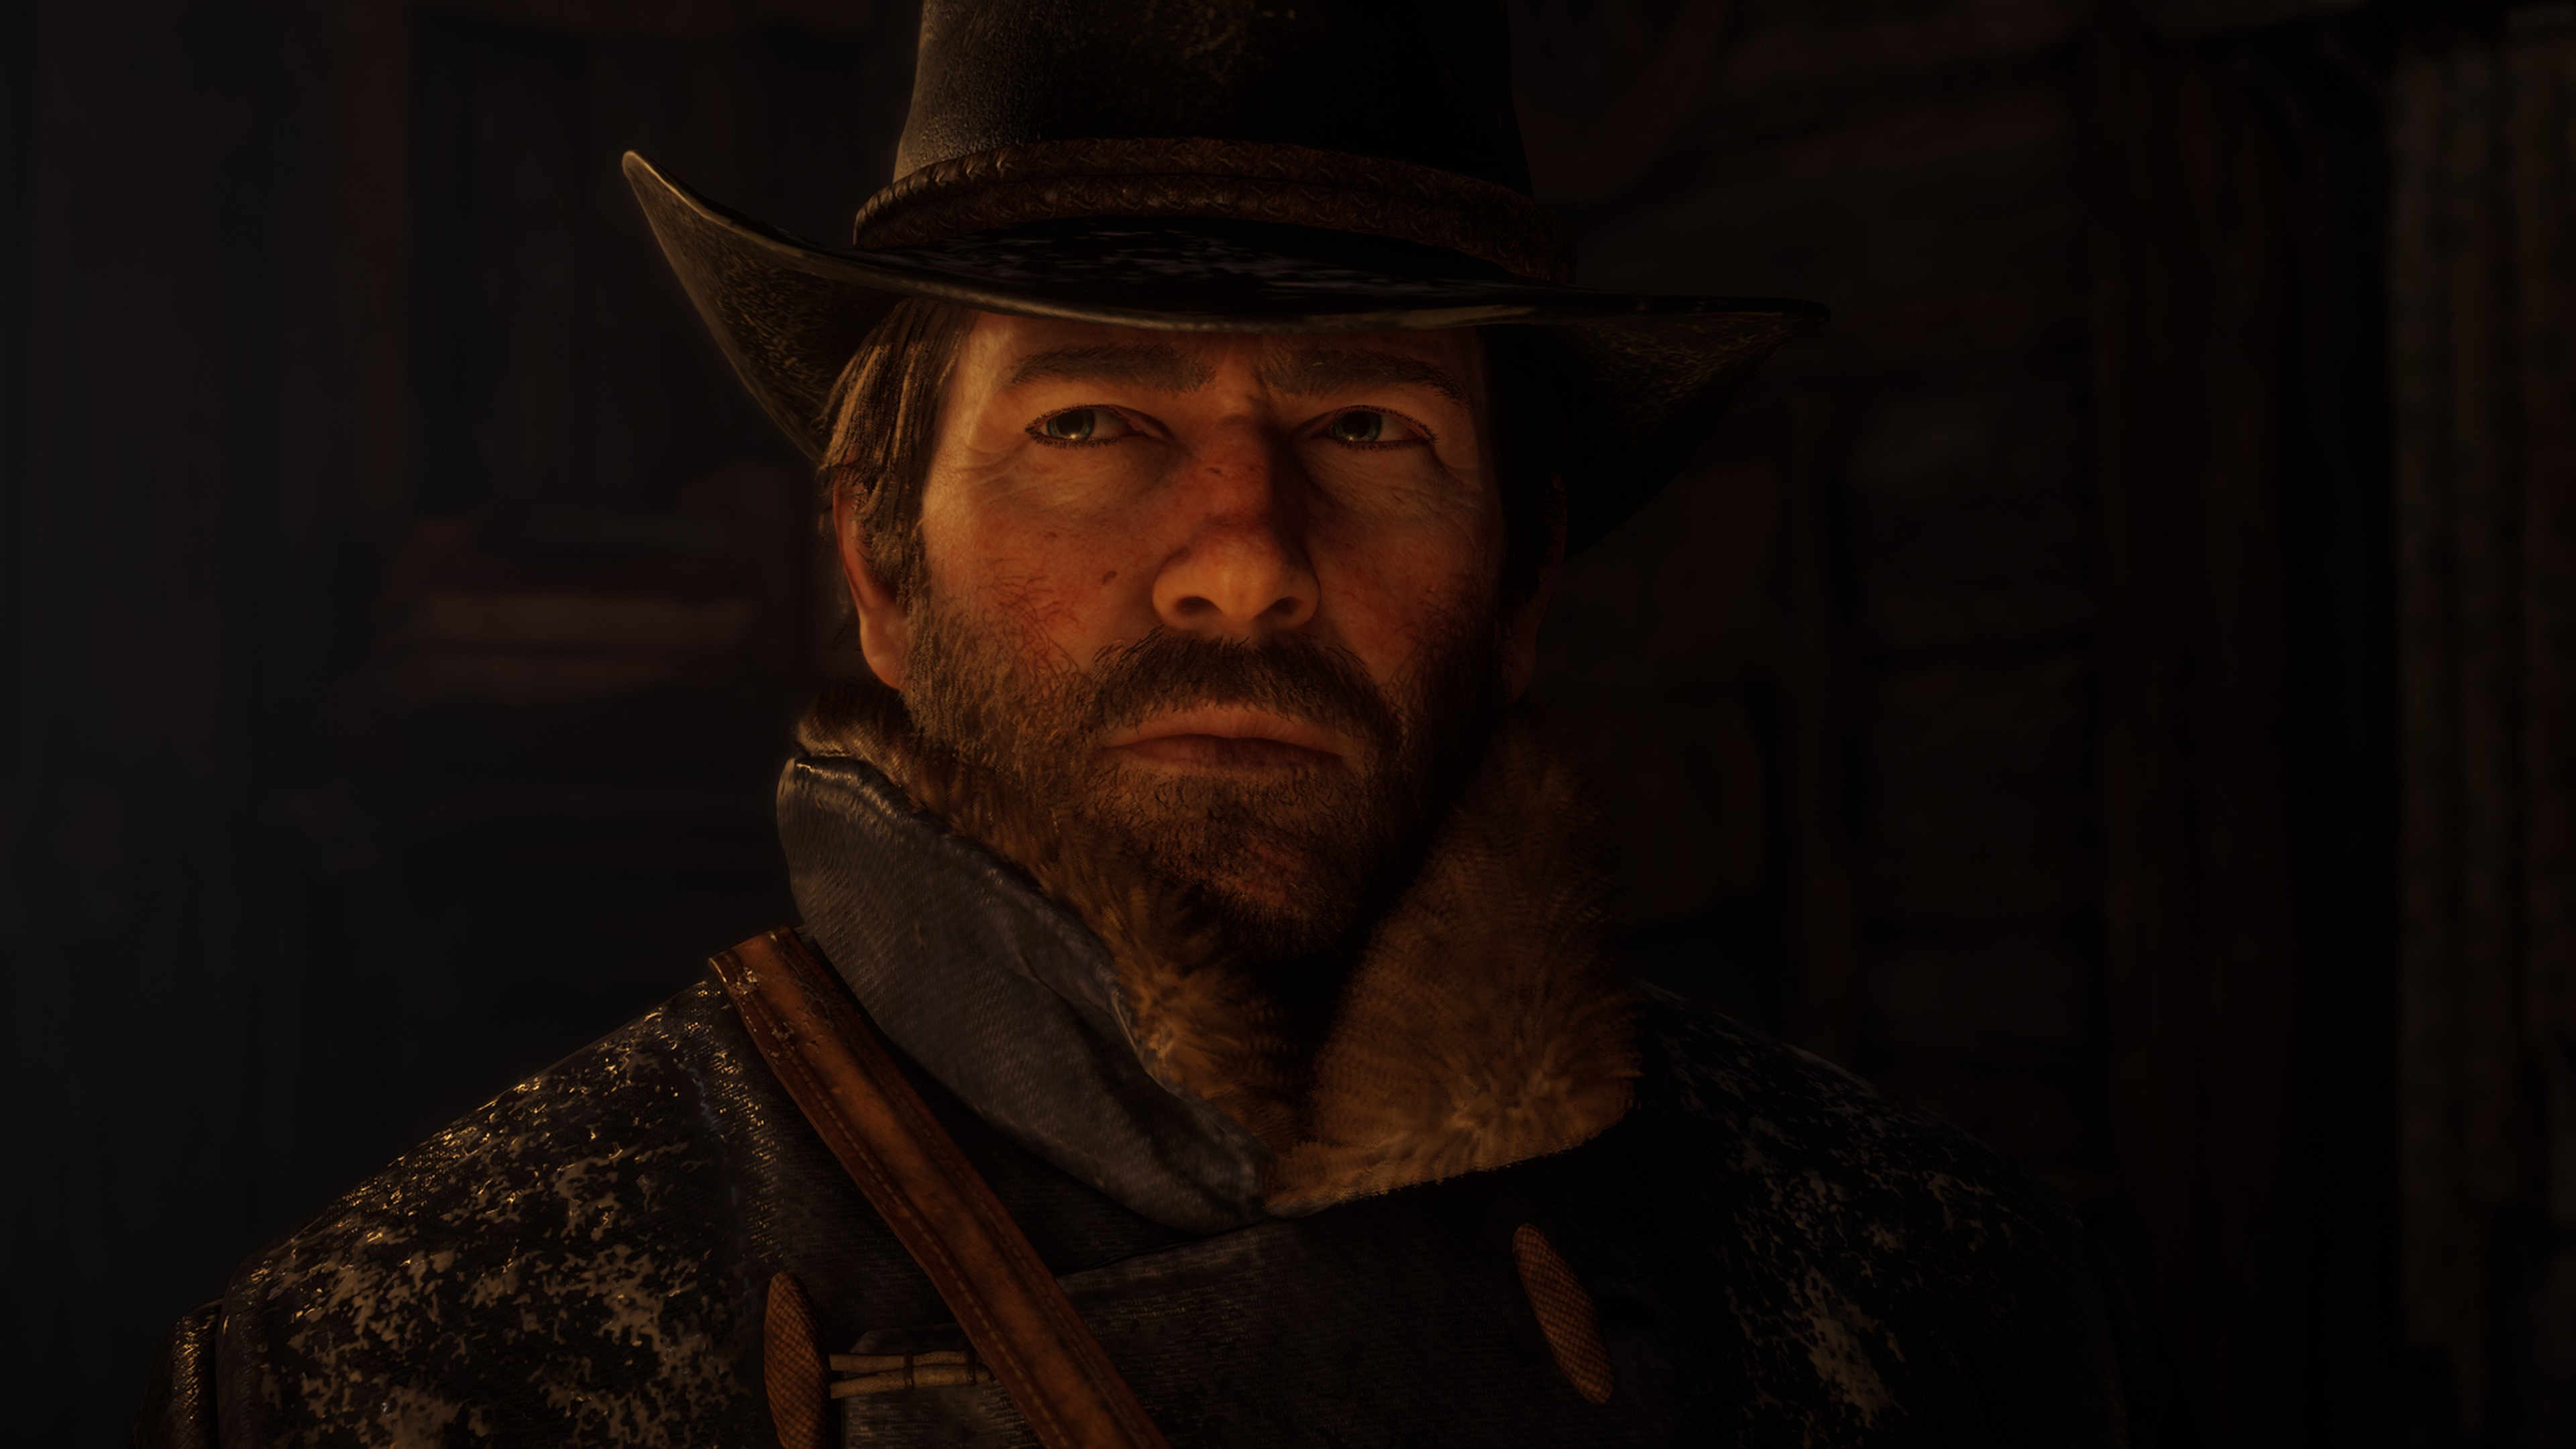 Abigail Resident Evil Final Chapter Wallpaper 22479: How Red Dead Redemption 2's Character Customisation Sets